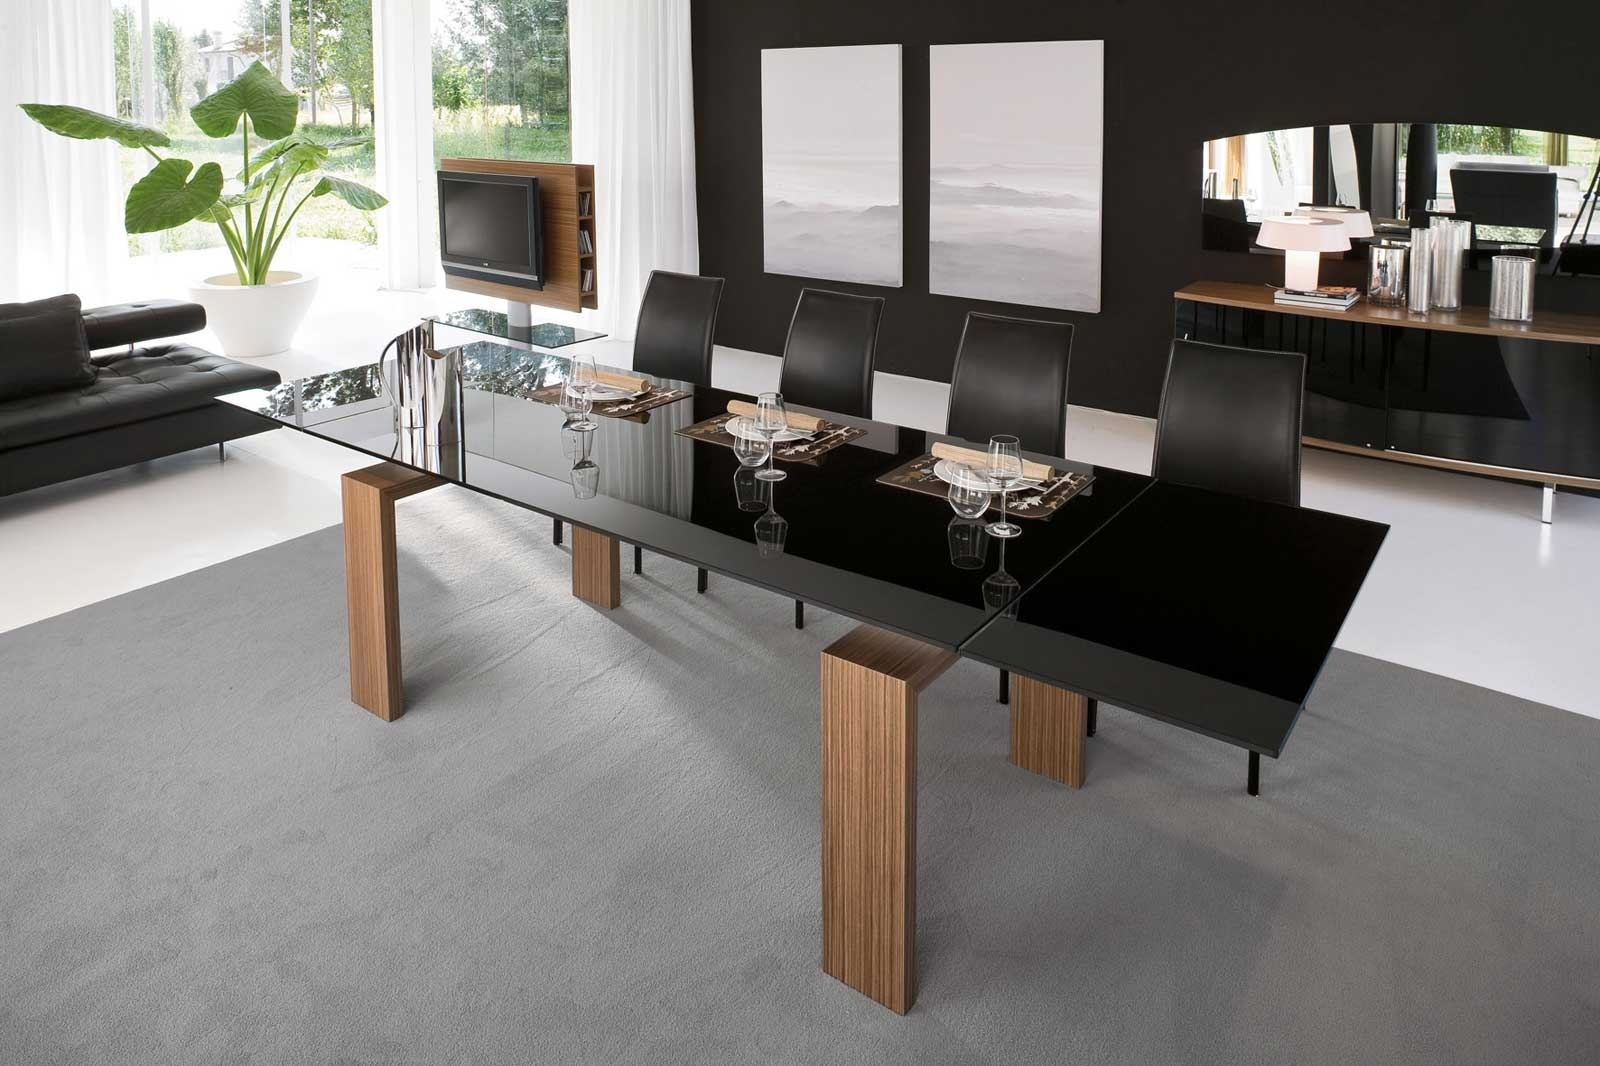 2017 Stylish Contemporary Dining Table Ideas Showing Simple Designs With Regard To Sleek Dining Tables (View 1 of 25)